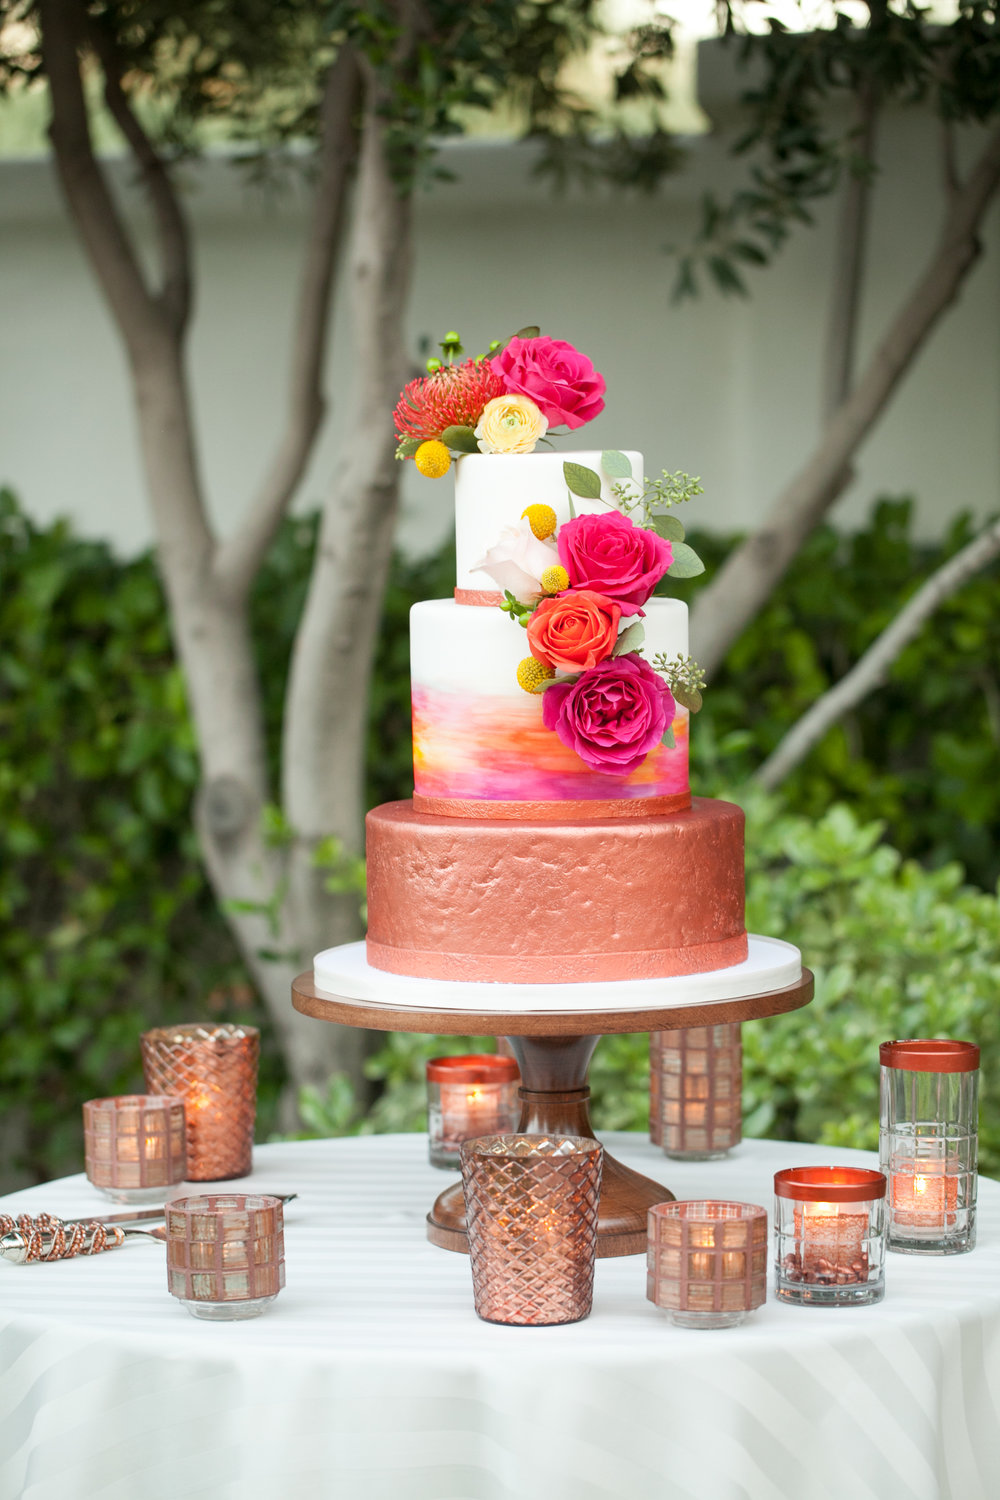 arizona desert wedding copper wedding cake fuchsia wedding cake el chorro wedding planner